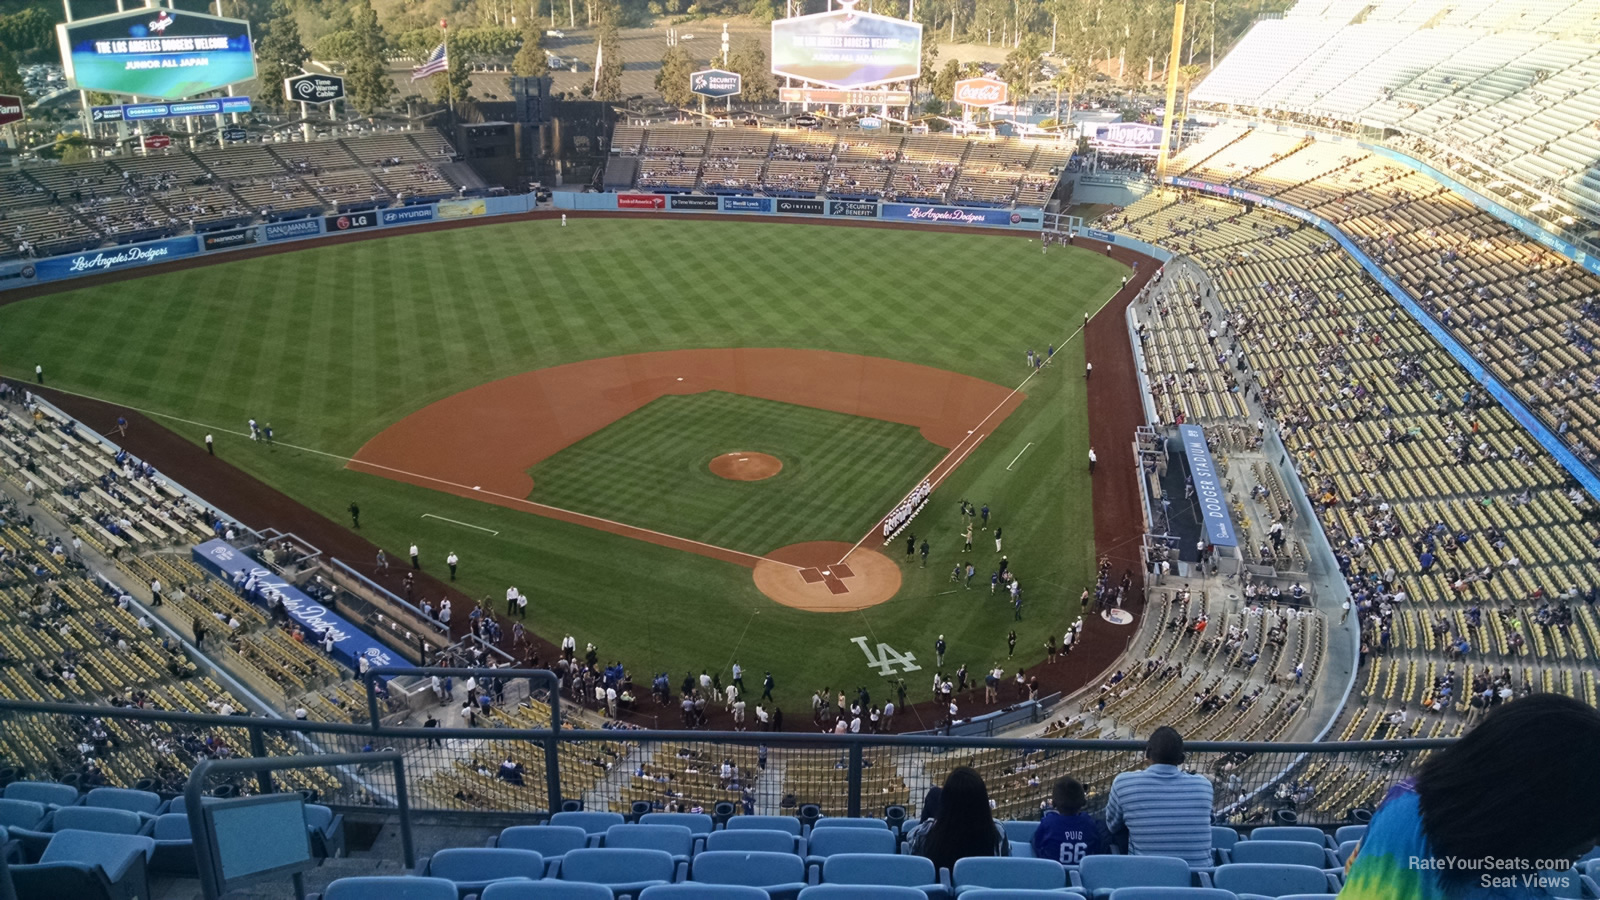 Dodger Stadium Top Deck 5 - RateYourSeats.com